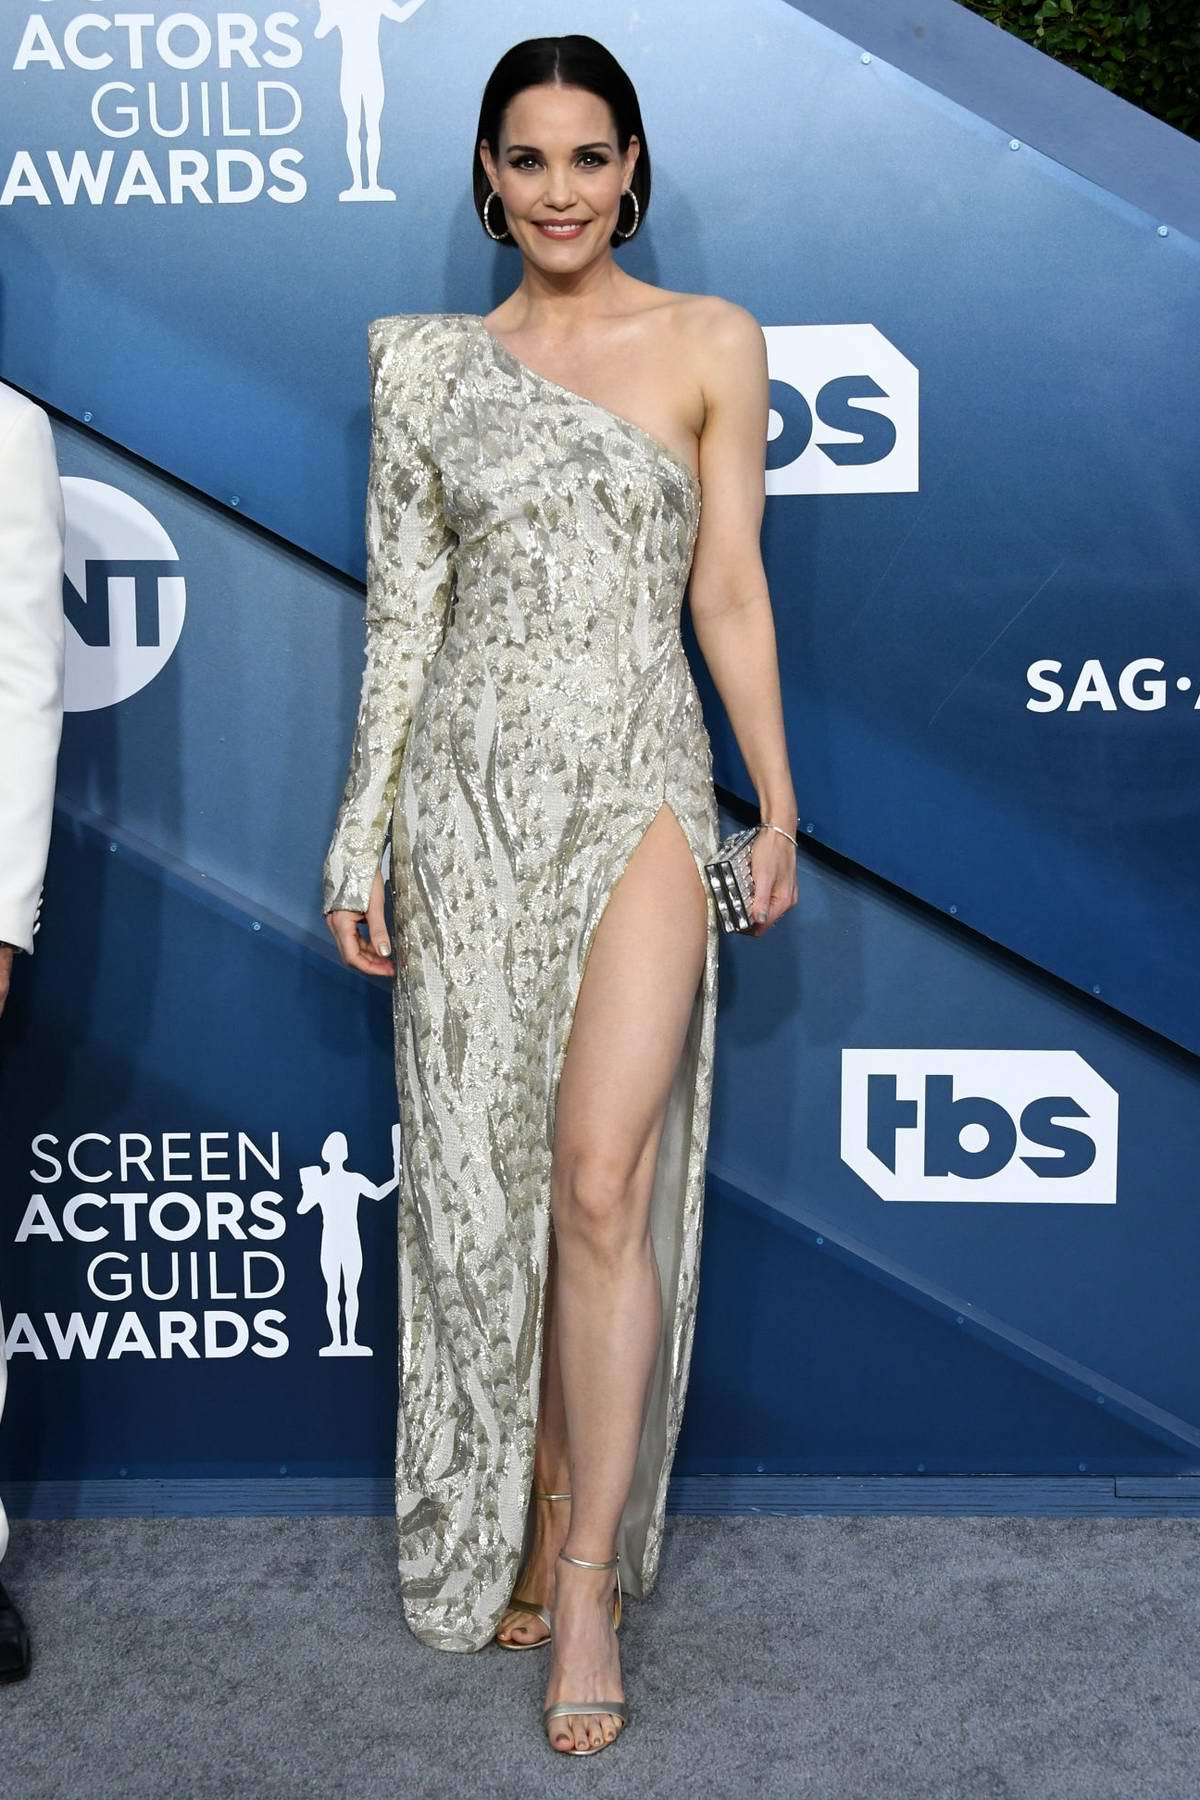 Leslie Bibb attends the 26th Annual Screen Actors Guild Awards at the Shrine Auditorium in Los Angeles